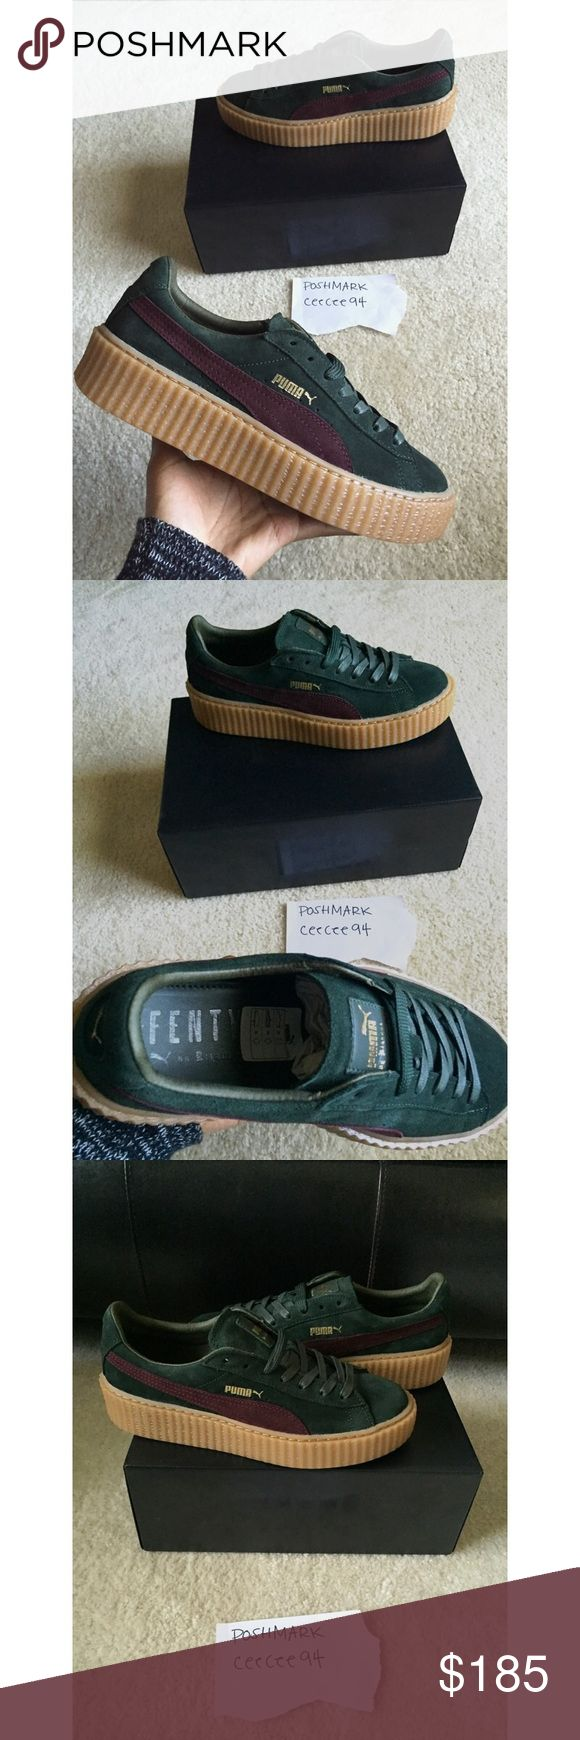 PUMA SUEDE CREEPER BORDEAUX GREEN WMNS 10 CREEPERS • Item: Puma Suede Creeper Bordeaux • Size: Womens 10 or Mens 8.5 • Reason for selling: Not my size. I normally wear a 9.5, so they were a bit too big. Bought a size 9.5 and they fit perfectly • Purchased from: Zappos • Condition: Brand New with Box • No trades • Price is firm • Happy Shopping!  **Re-listing this same item from a previous listing due to the buyer's lack of verification.** Puma Shoes Sneakers